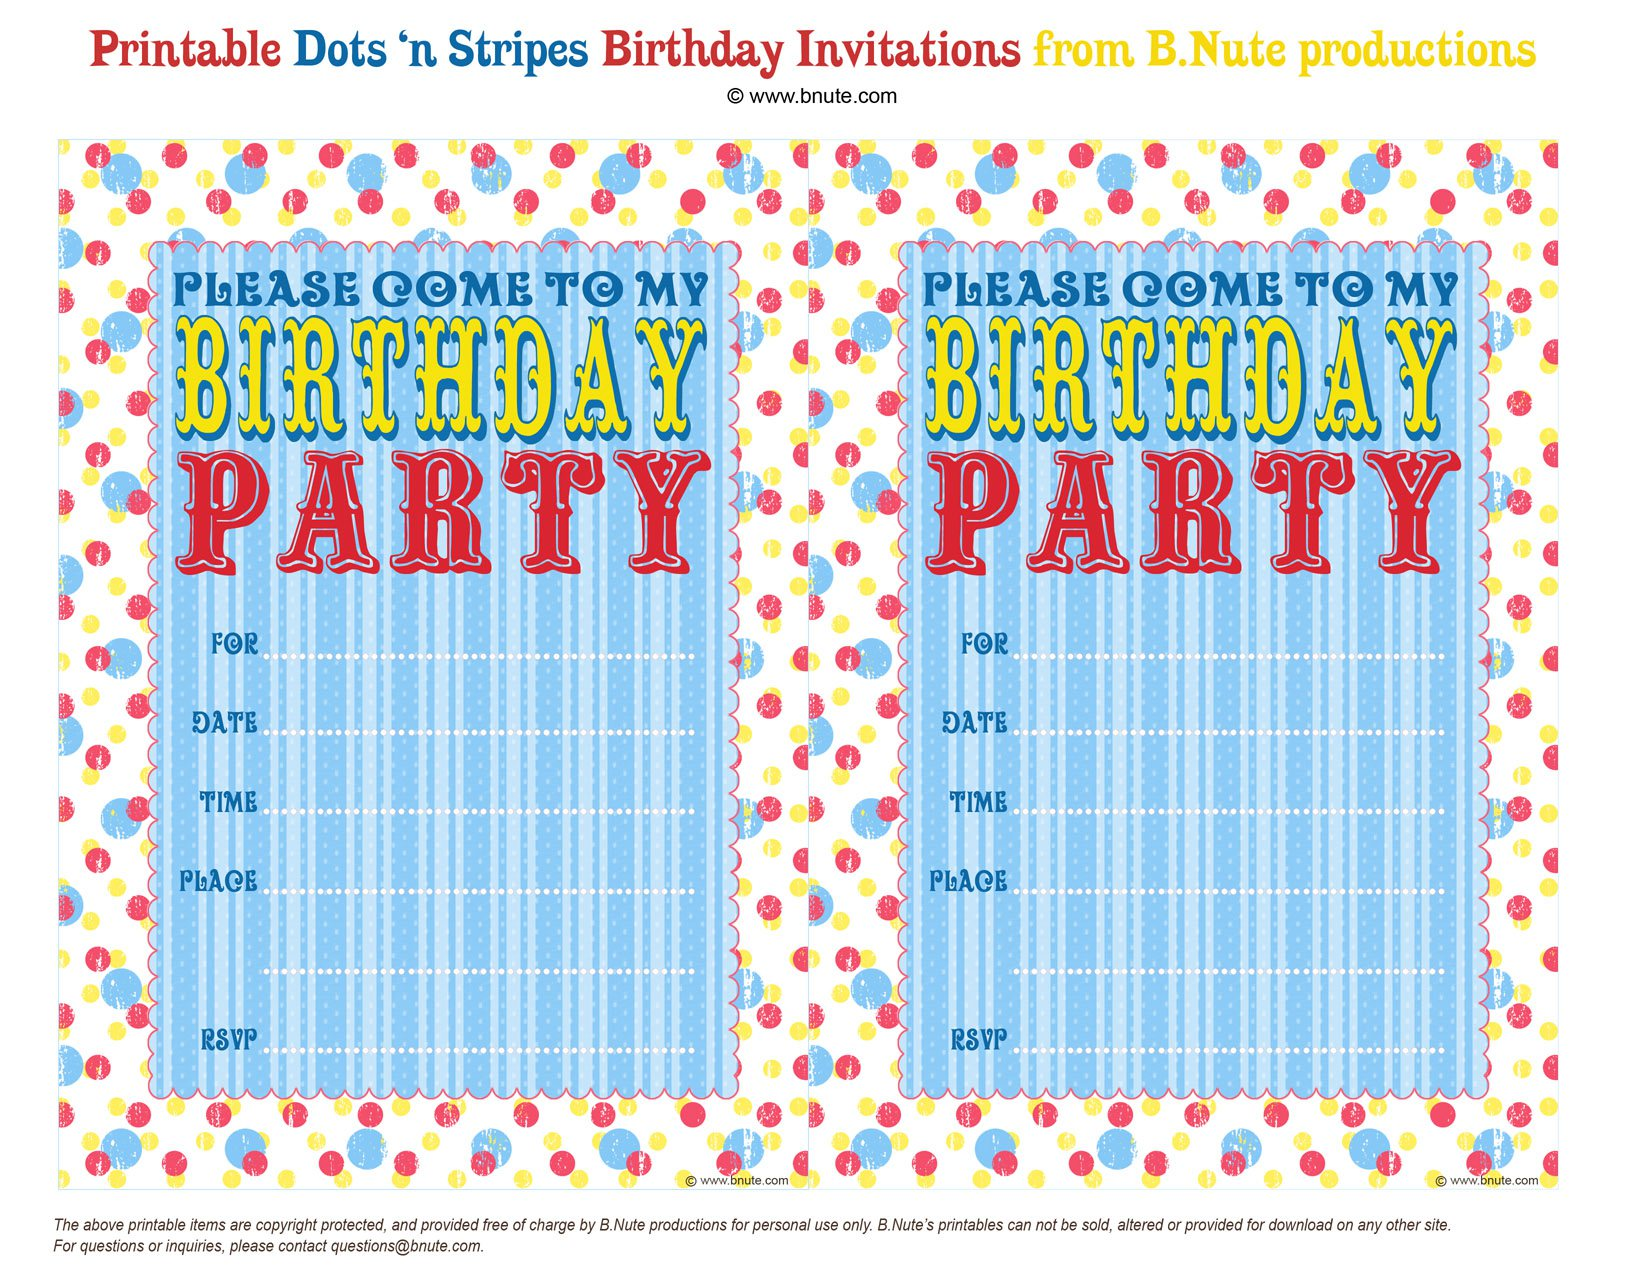 print birthday invitations ; ideas-collection-invitations-for-a-party-to-print-with-additional-birthday-invitations-print-birthday-invitations-invitations-of-invitations-for-a-party-to-print